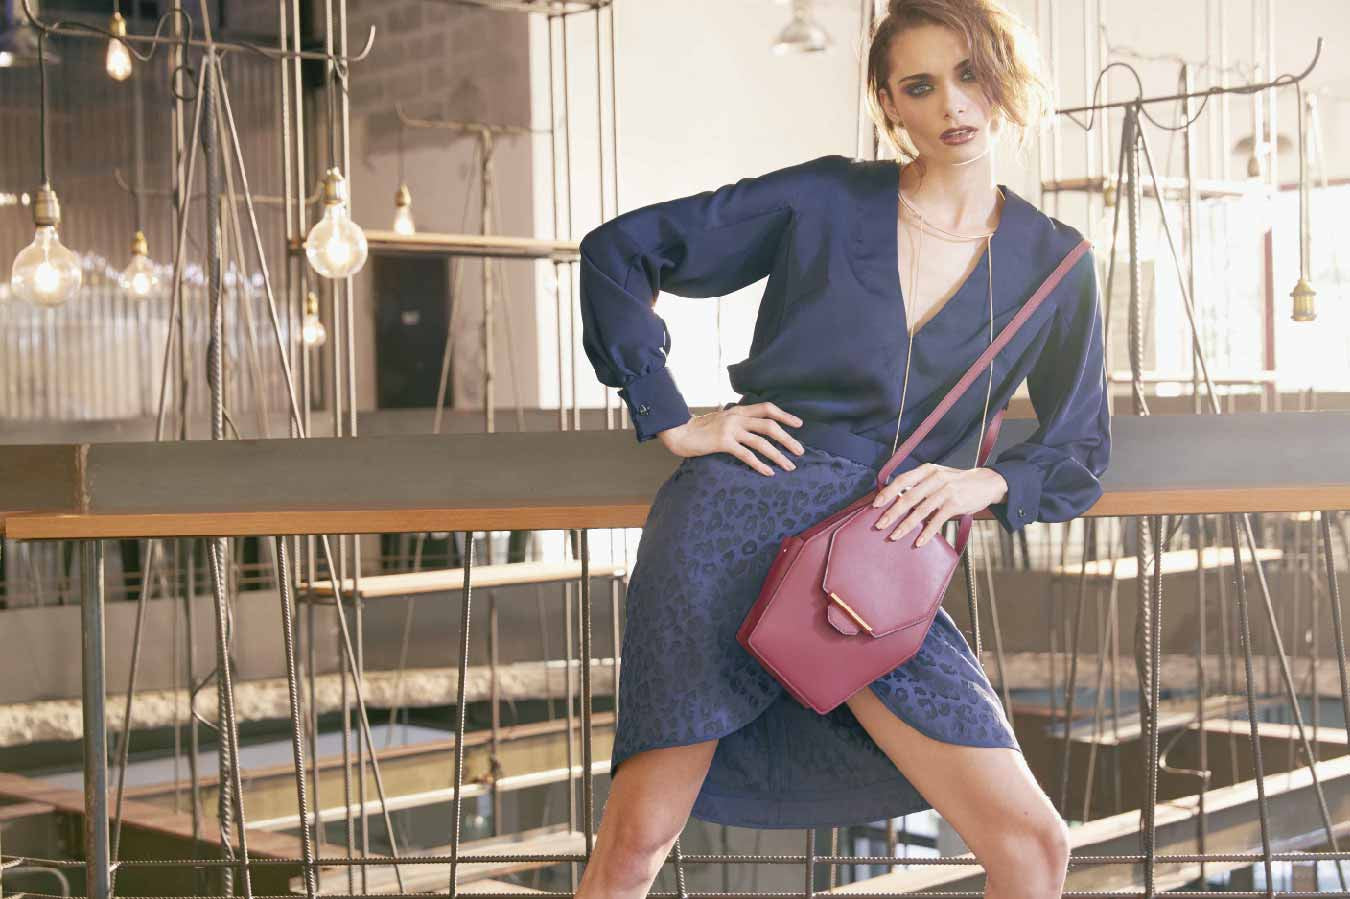 Image of a stunning model holding the luxury classic Rue Diamond shoulder handbag in Sangria (Plum). Nothing speaks louder than the shape of this handbag; inspired by a diamond- beautiful and rare,  the Rue Diamond is Revelry's iconic style handbag. It is also the most unique piece in the range because of it's cut. Like an expensive diamond cut, the external front and back body of the Rue Diamond handbag is cut as one whole piece for a cleaner and luxury finish. The Rue Diamond has a distinctive style, edgily playful yet elegant. A sure wow factor for someone who is fashion conscious and daring to break any fashion boundaries. Can be teamed up with a casual daily look or bold and evening stylish look, the possibilities are limitless. Shaped like a diamond, the Rue is designed with a long front flap that wraps around from back to front. Both sides of the handbag features a small functional pocket that is enclosed with a small stud. The pocket is useful for keeping smaller items such as receipts, pen or cards.  The structure of the handbag is padded slightly for added comfort and is supported by a strong base to allow the handbag to stand on its own. With an adjustable shoulder strap, the Rue Diamond can be slung on the shoulder or across the shoulder. Alternatively, the shoulder strap can be removed for a clutch style look or double wrapped around the top flap for a top handle look. Whether it is worn casual or dressy, the Rue Diamond handbag makes any outfit distinctively striking. Designed in a smooth full grain cow leather, the Rue Diamond comes in a rich plum colour called Sangria; an exotic red that evokes a sense of rich adventure and majestic luxury. The choice of leather is captivated with a surrounding tonal oil edging and a mild supple sheen leather surface. This sleek handbag and distinctive silhouette has a combination of a firm front and back body and flexible sides for an elegant finish. The front features a top flap with an embellished 22 karat gold Revelry's exclusive gold bar hardware with subtle branding embossed at the top of the hardware. Custom mould in quality metal and plated in 22 karat gold, this Gold Bar hardware is a unique and innovative lock closure that serve as a design feature and secure lock function. The back features a stitching detailing that simulates the shape of the font flap to create an overall balance looking design. The interior of the Rue Diamond features a deep set compartment with ample spacing to fit most of your essentials, e.g. wallet, keys, mobile phone, notebook, lipsticks, pen and many more. The handbag comes with a widen sides to allow easy access into the narrow opening of the handbag. A back pocket is available to store and organise smaller items such as cards and receipts. Every piece is internally lined with high quality gold woven fabric at the internal compartment and back pocket while the rest of the interior body including top flap, facing and pocket binding is lined in smooth full grain cow leather. An iconic Revelry logo is embossed in gold on the mid facing of the handbag for that designer luxury finish. Each handbag is crafted in meticulous detailing and luxury finish; with attention to detail on the stitching of the handbag. A luxury and unique masterpiece, the Rue Diamond shoulder handbag is a true gem on it's own and is available online at www.revelry-rvly.com